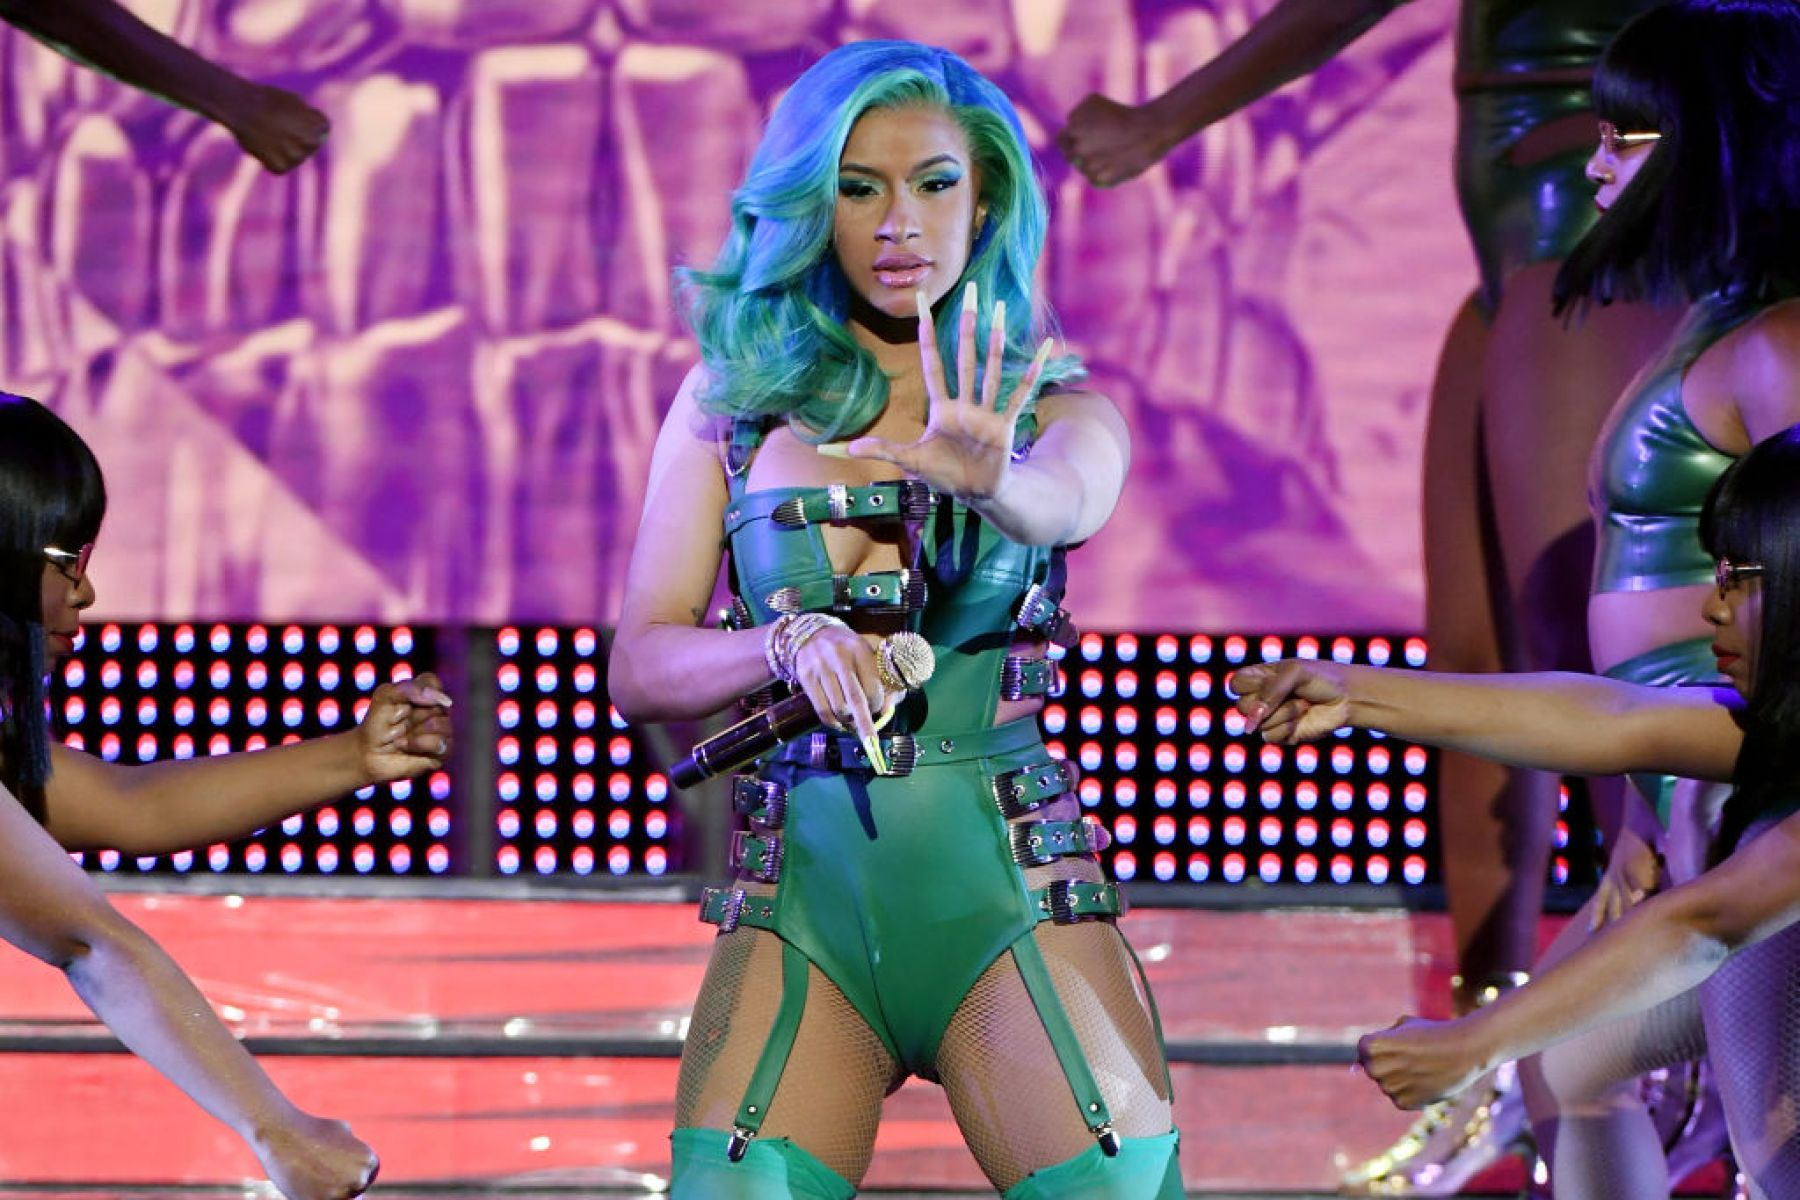 LAS VEGAS, NEVADA - JANUARY 26:  Rapper Cardi B performs during the 2019 Adult Video News Awards at The Joint inside the Hard Rock Hotel & Casino on January 26, 2019 in Las Vegas, Nevada.  (Photo by Ethan Miller/Getty Images)